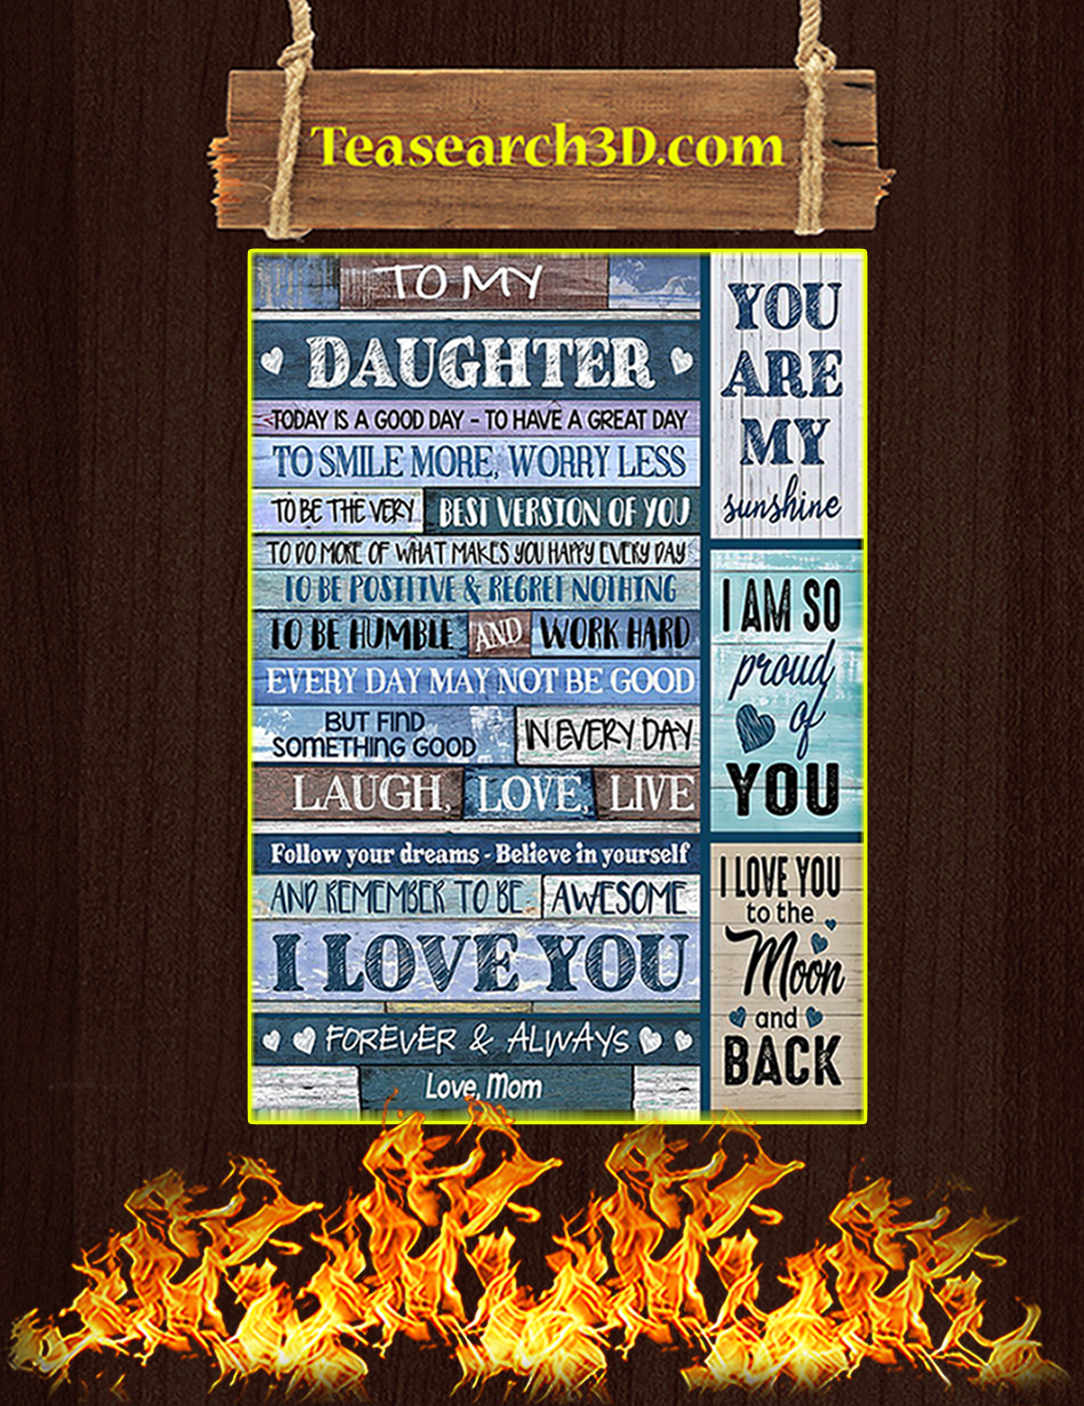 To my daughter today is a good day love mom poster A2